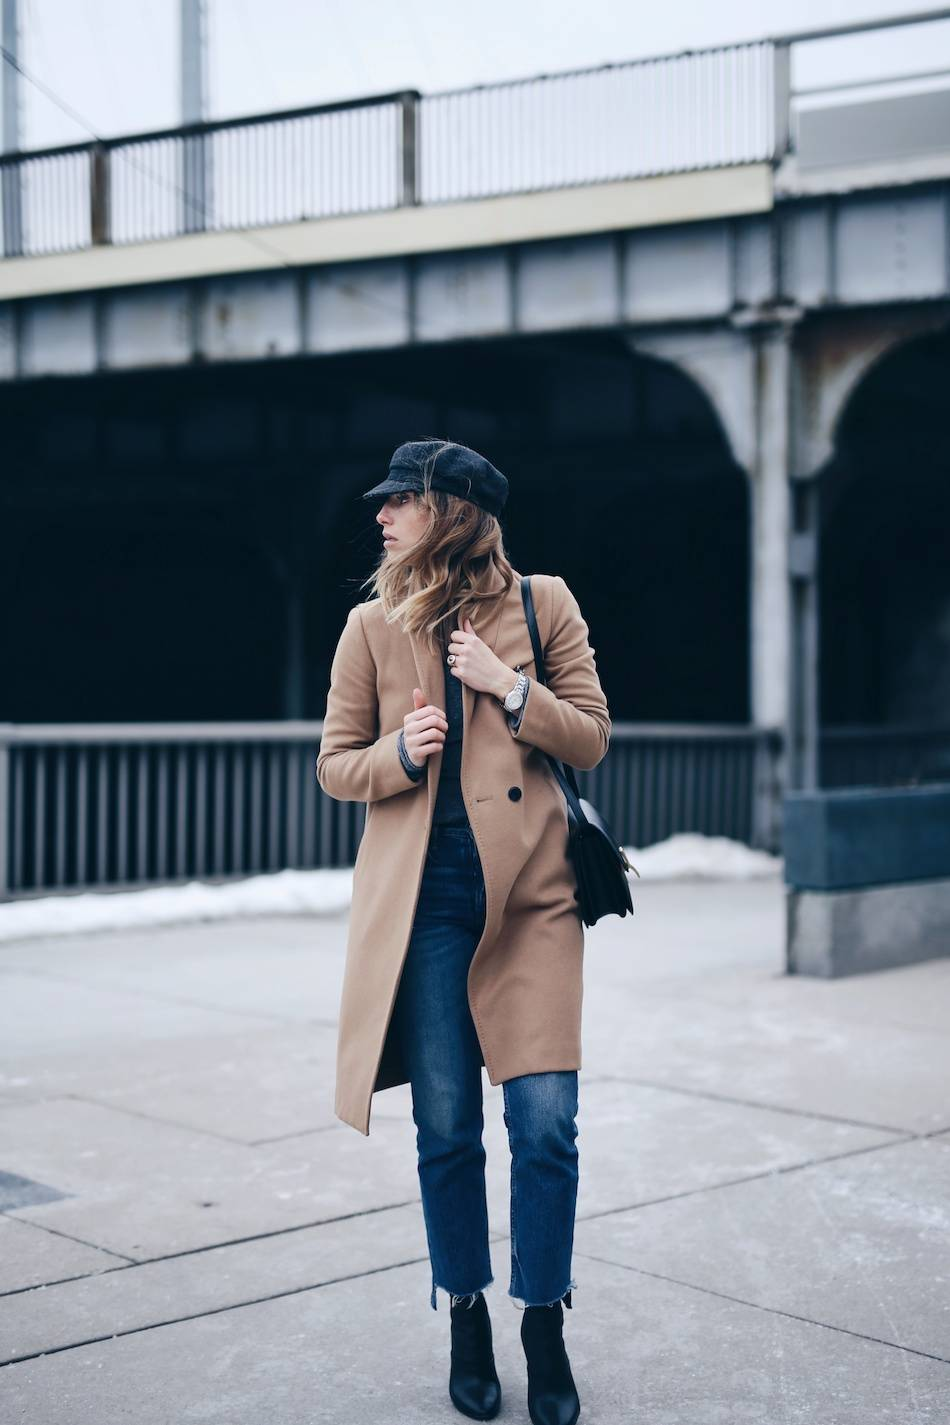 Style and beauty blogger Jill Lansky of The August Diaries Isabel marant Eva newsboy cap, camel coat, jeans, how to dress like a Parisian, tag heuer watch